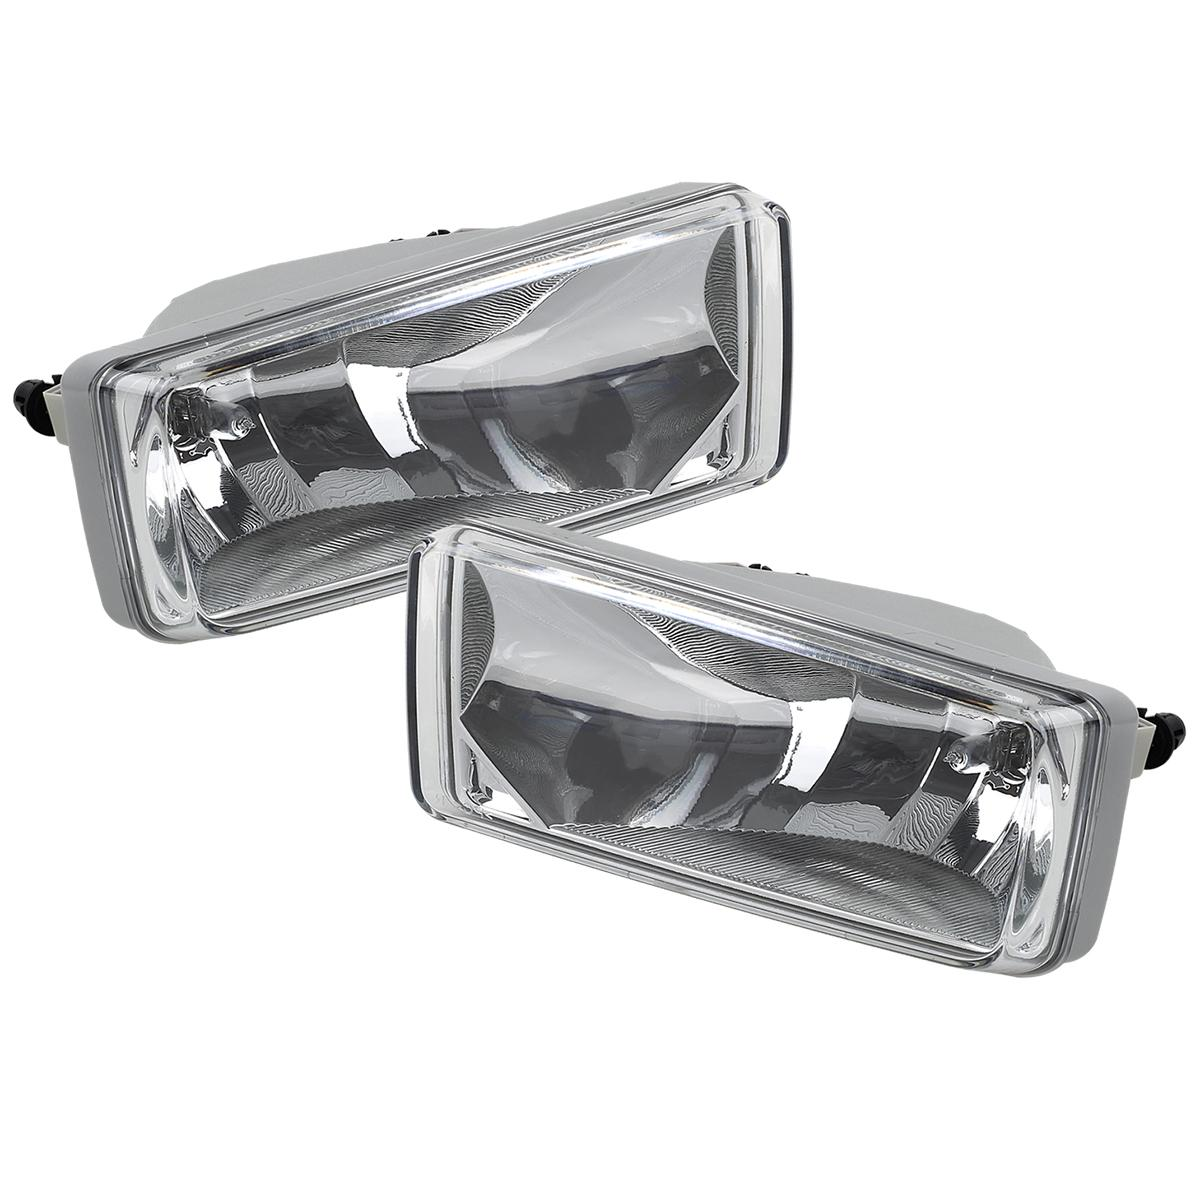 For 2007-2014 Chevrolet Silverado Front Bumper Fog Lights